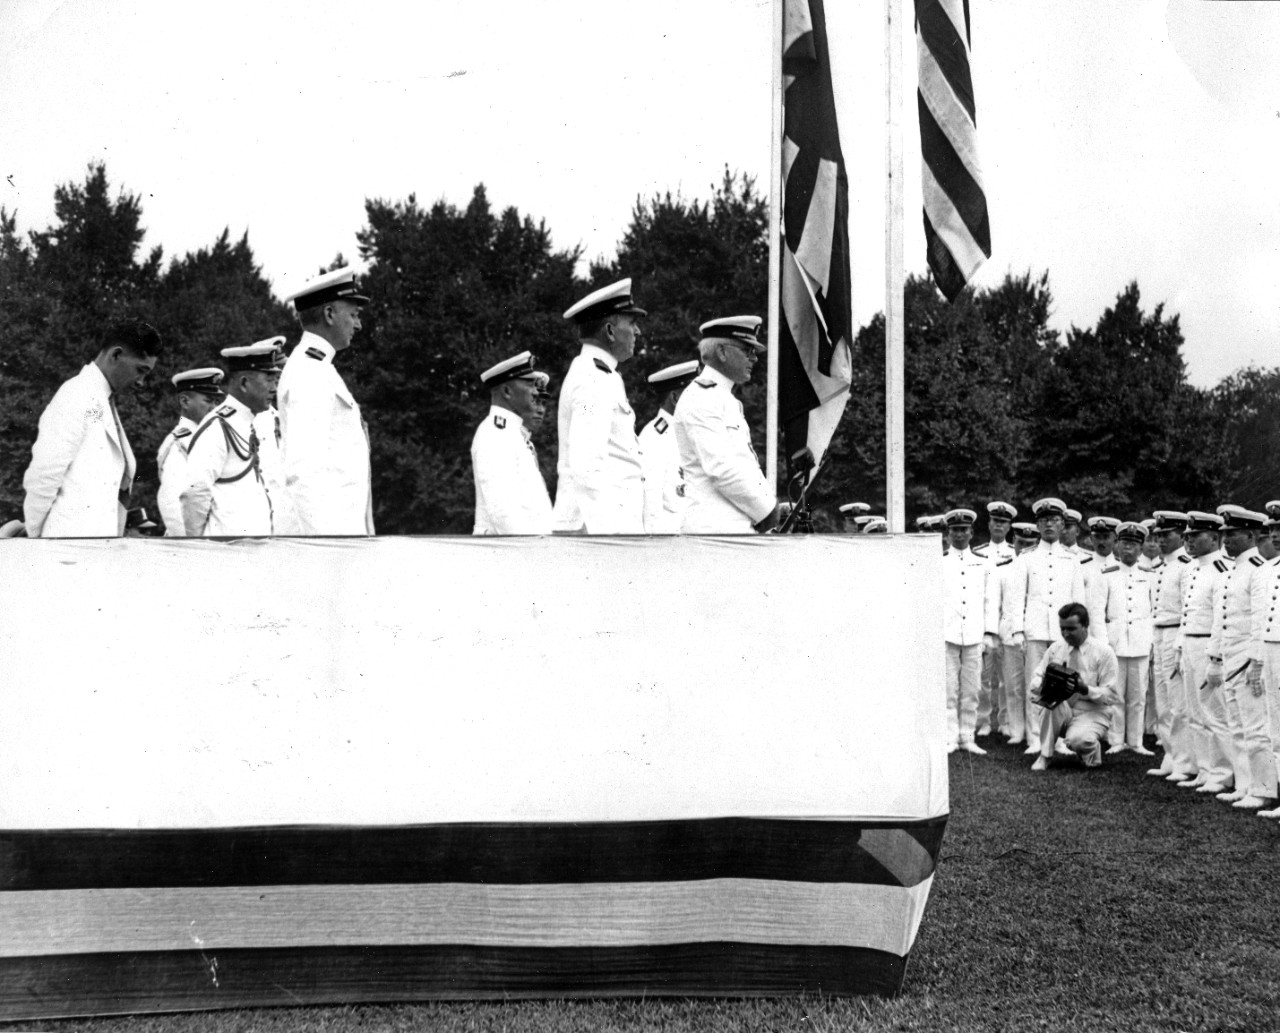 Chief of Naval Operations Admiral William H. Standley addresses Japanese midshipmen, circa 1936. To his left is Japanese Admiral Zengo Yoshida.